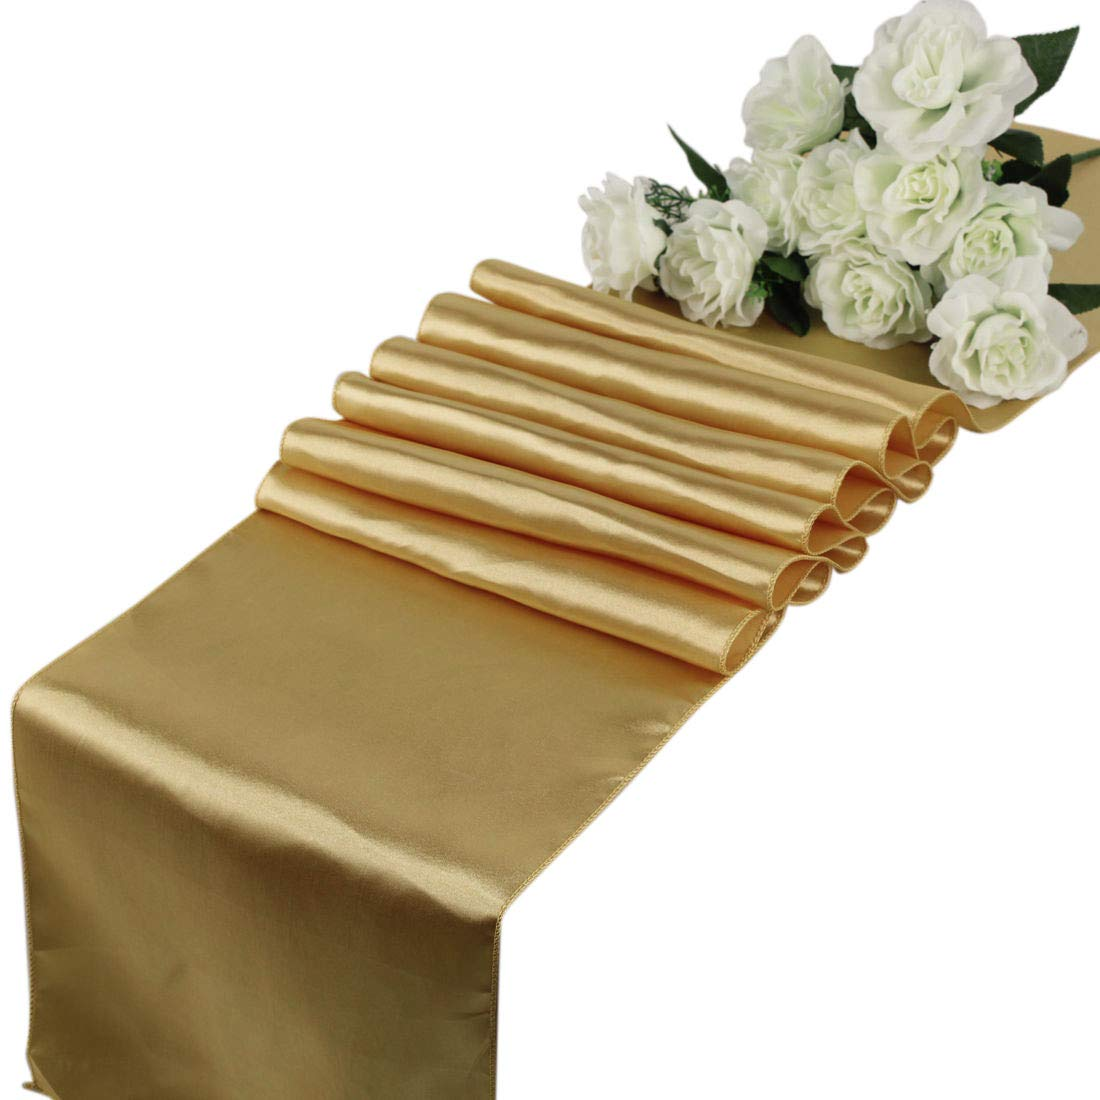 mds Pack of 10 Wedding 12 x 108 inch Satin Table Runner for Wedding Banquet Decoration- Gold by mds